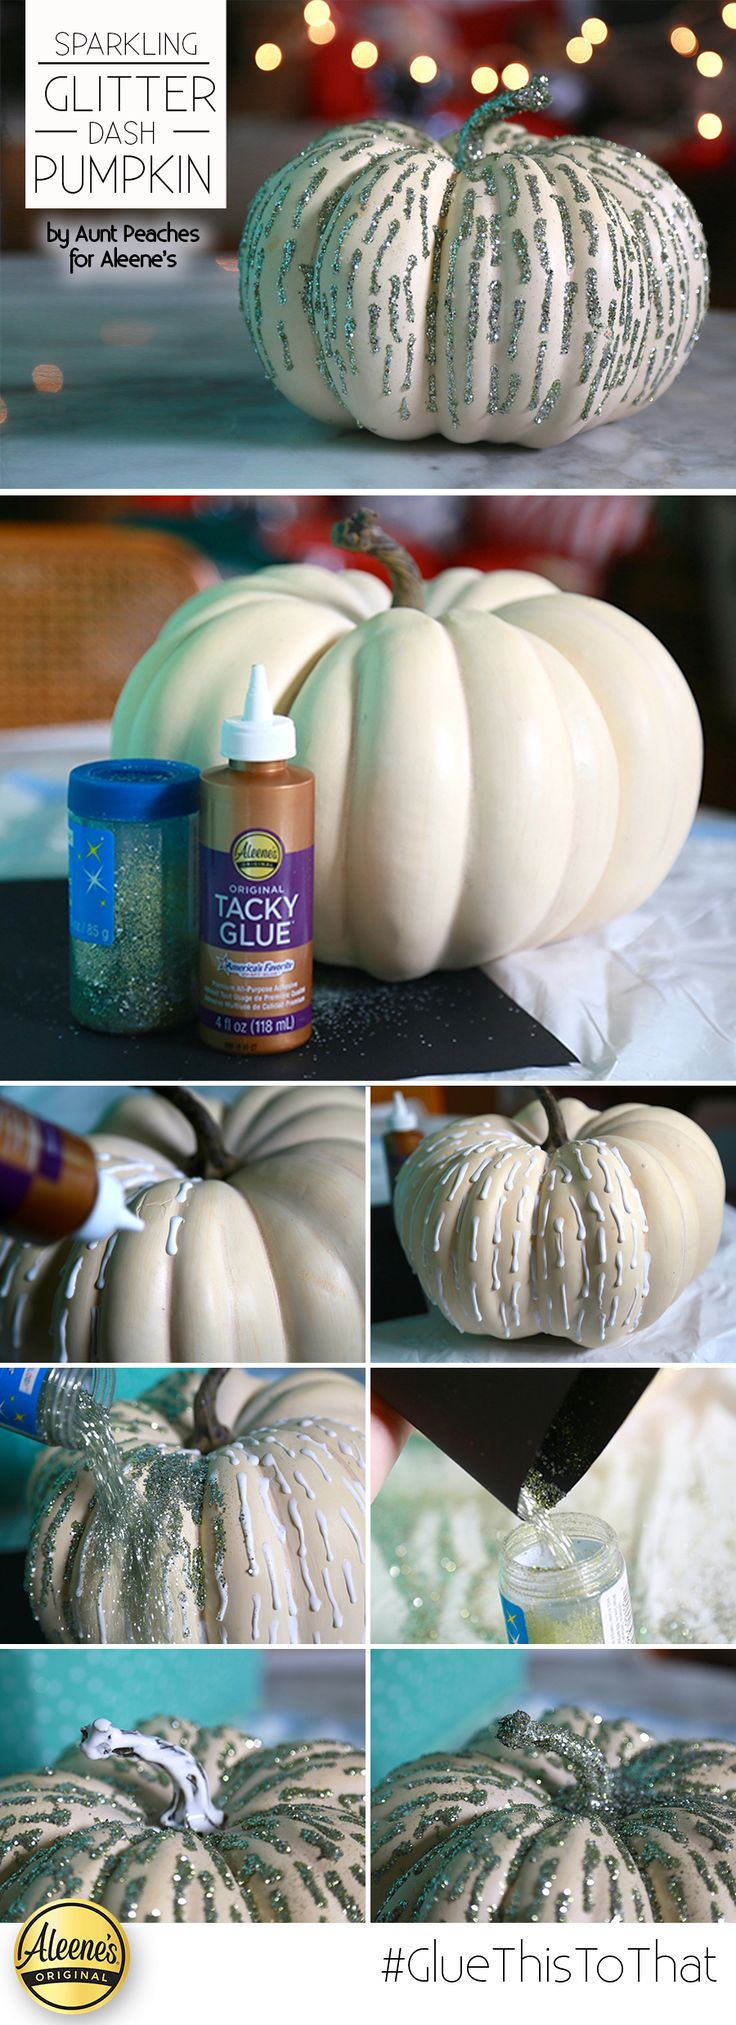 Make this awesome glitter pumpkin with some Aleene's Tacky Glue and glitter. The…